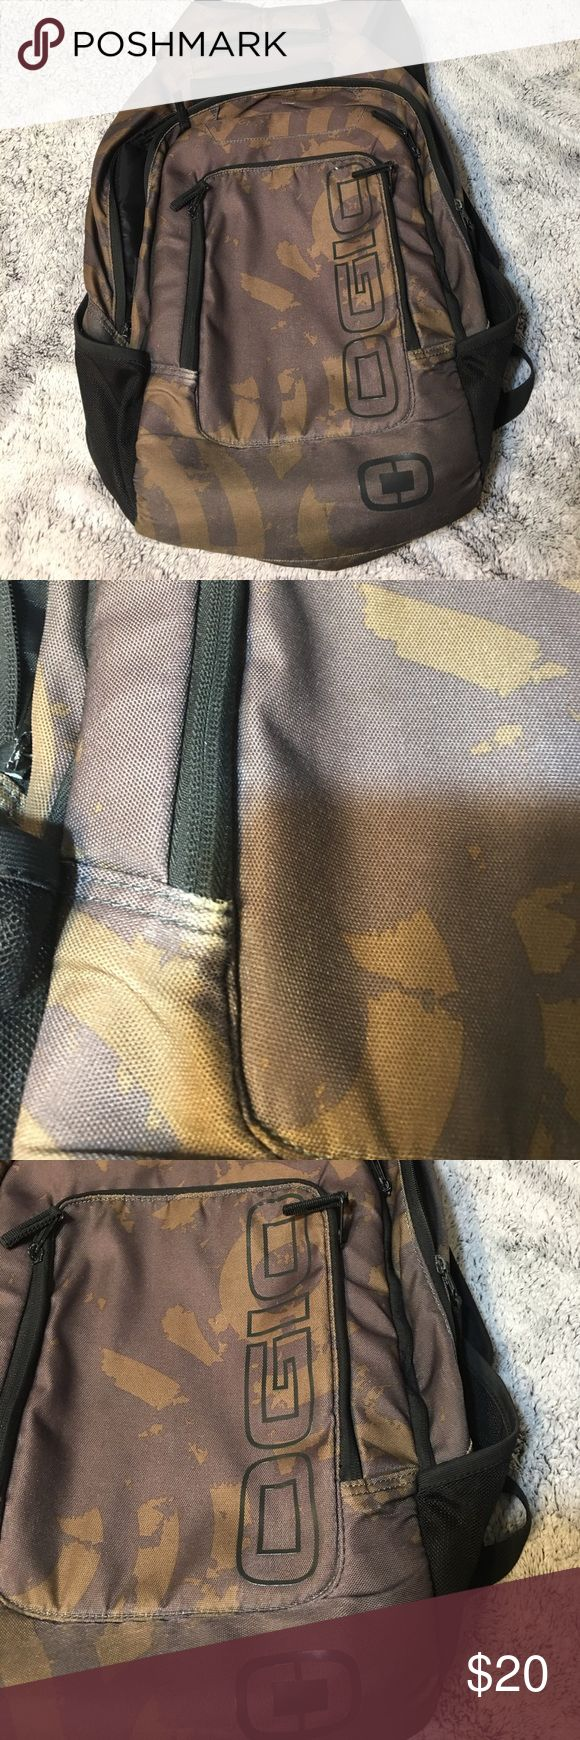 Ogio backpack Good condition other than small faded spot by zipper as pictured ogio Bags Backpacks